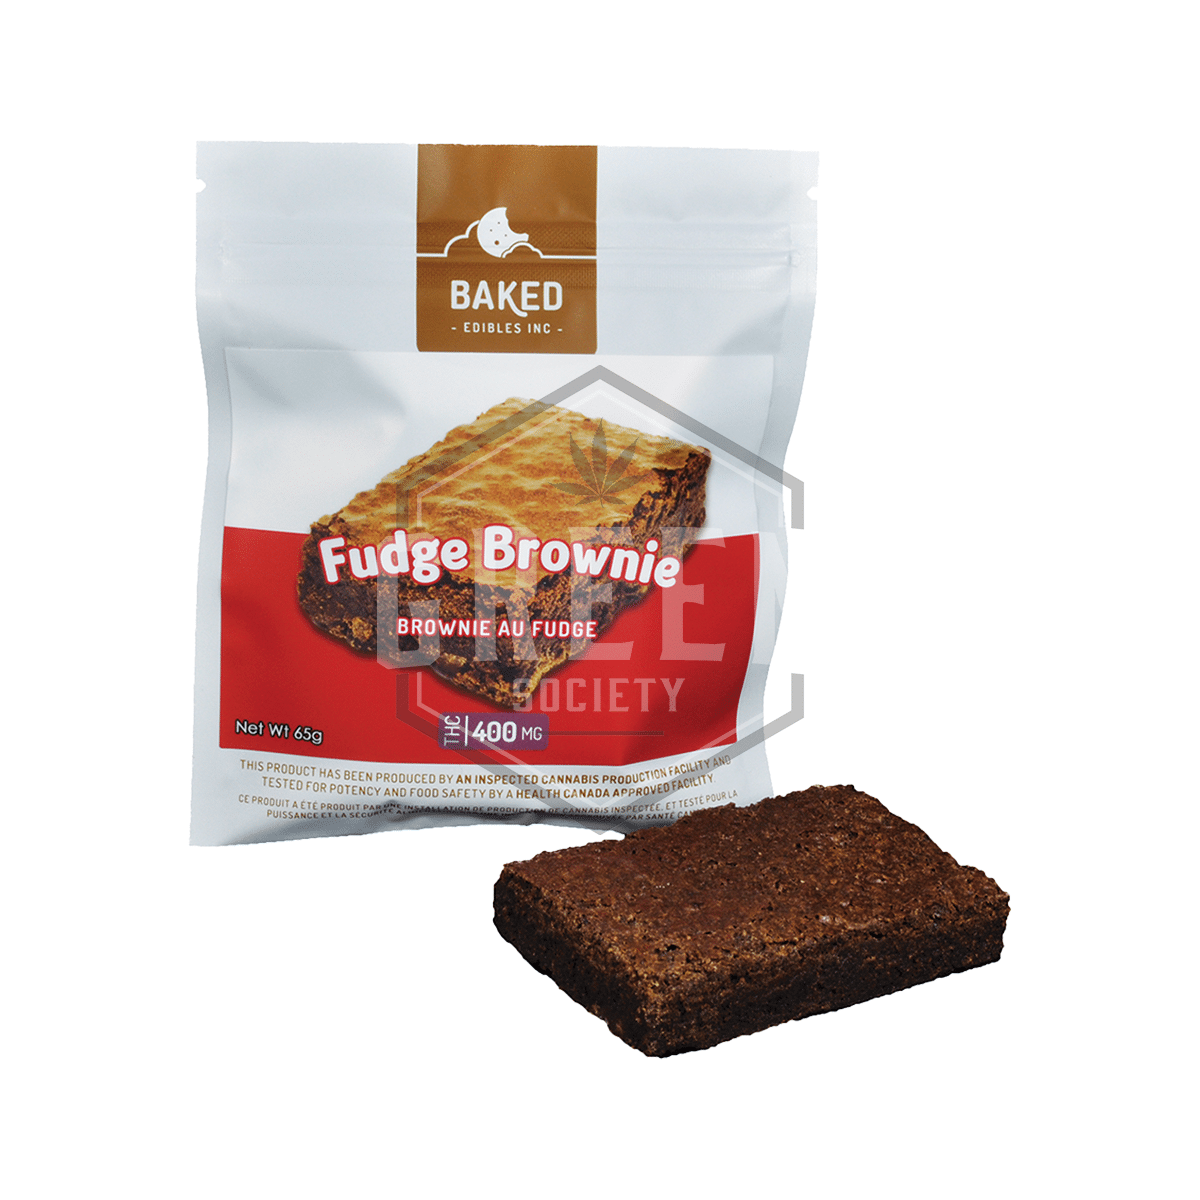 Fudge Brownie (400mg) by Baked Edibles by Green Society - Image © 2018 Green Society. All Rights Reserved.